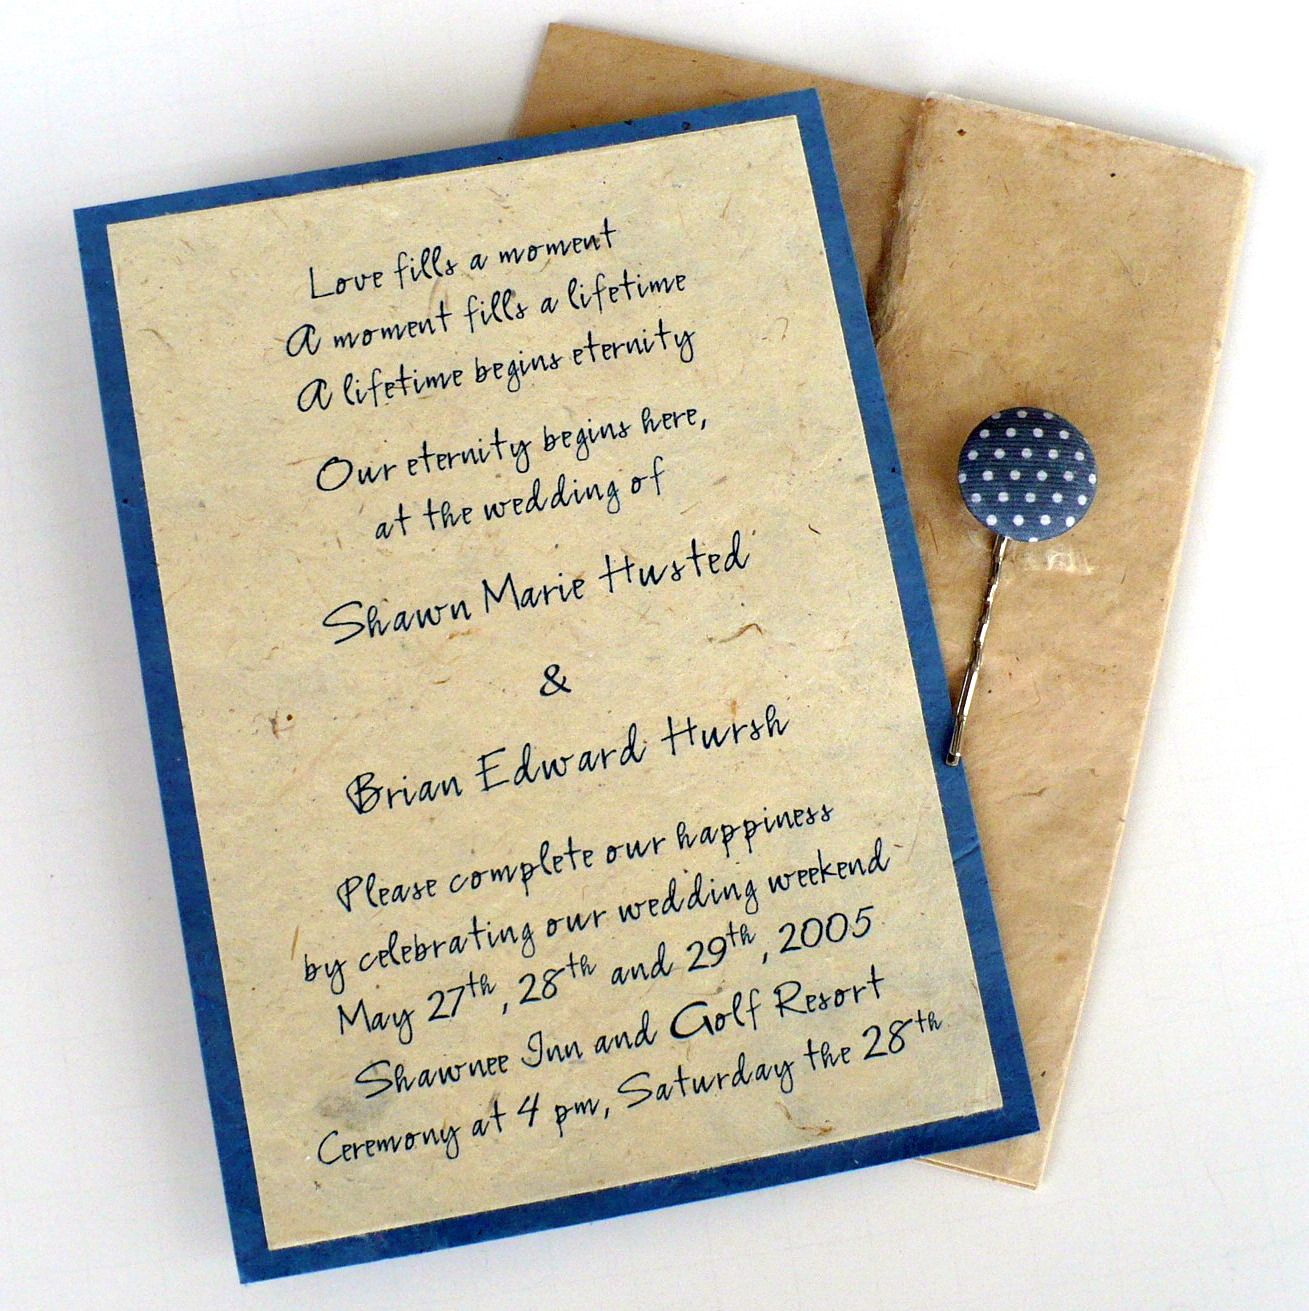 Hindu Wedding Reception Invitation Wording In English Hindu